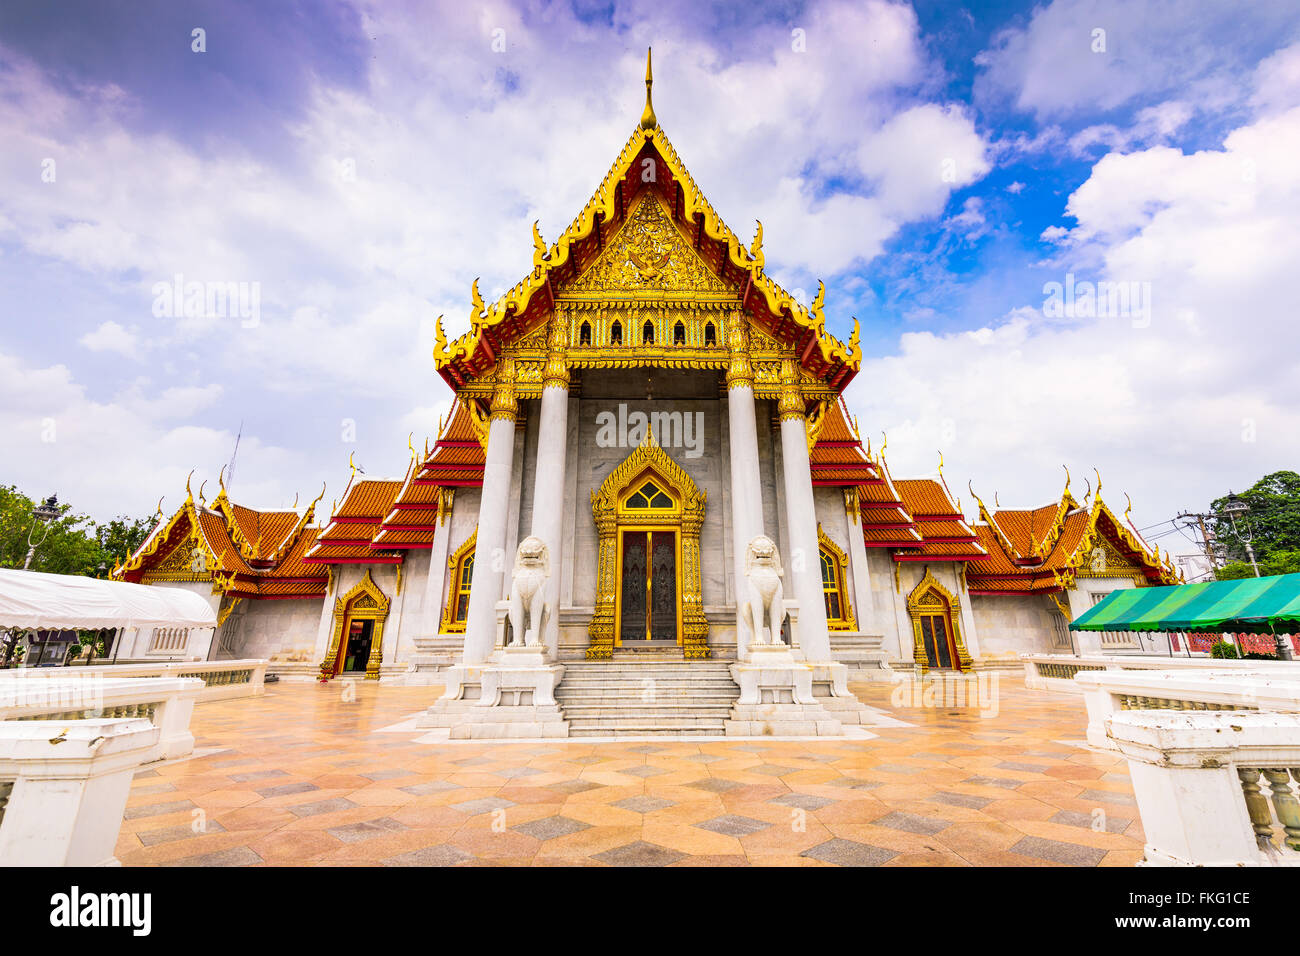 Bangkok, Thailand at the Marble Temple. - Stock Image